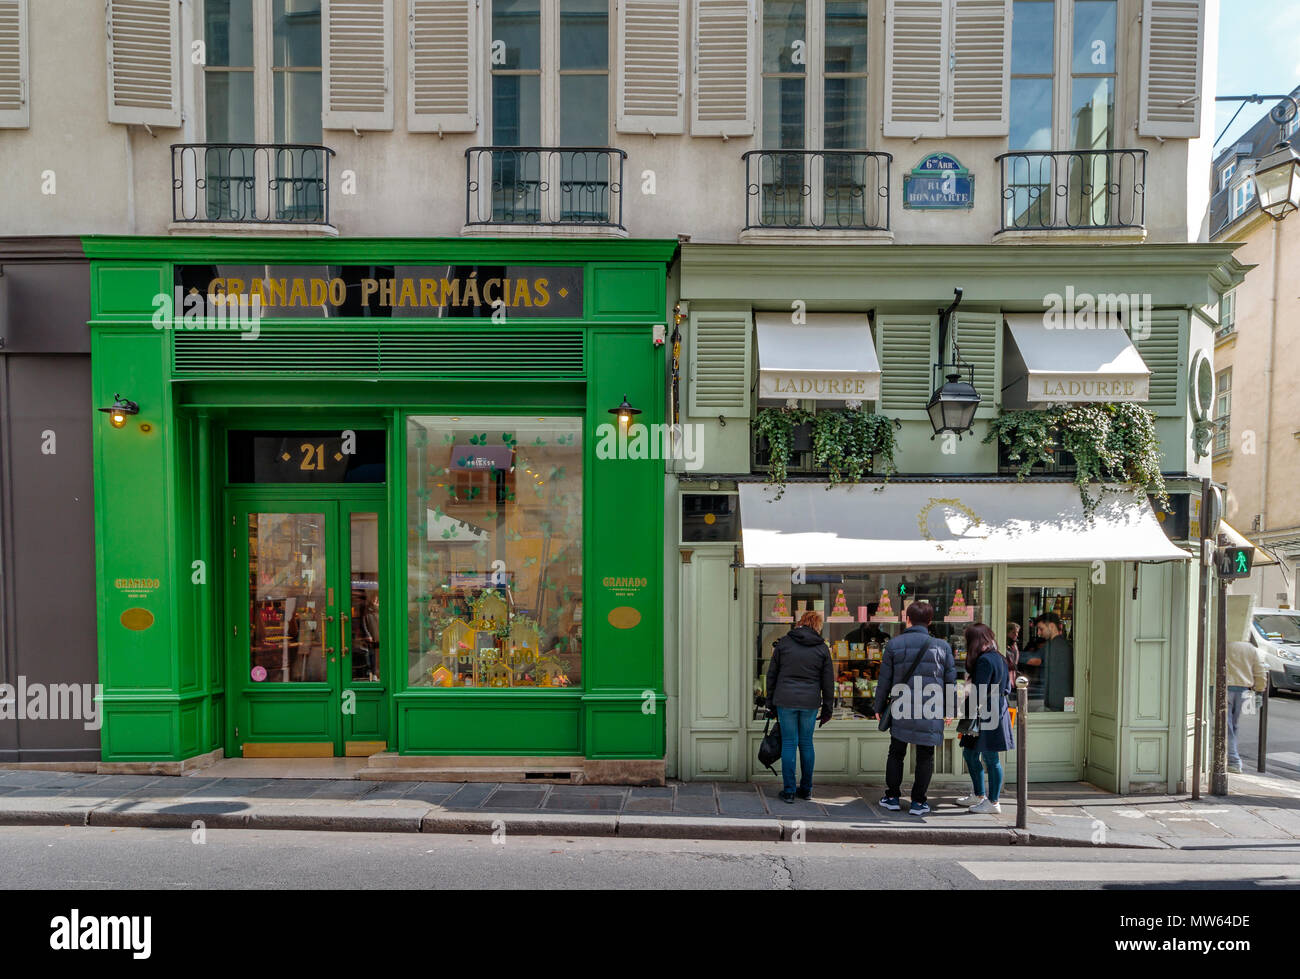 Grenado Pharmaciasa beauty product shop and Laduree a shop renowned for it's macarons side by side on Rue Bonaparte ,6th arrondissement ,Paris - Stock Image